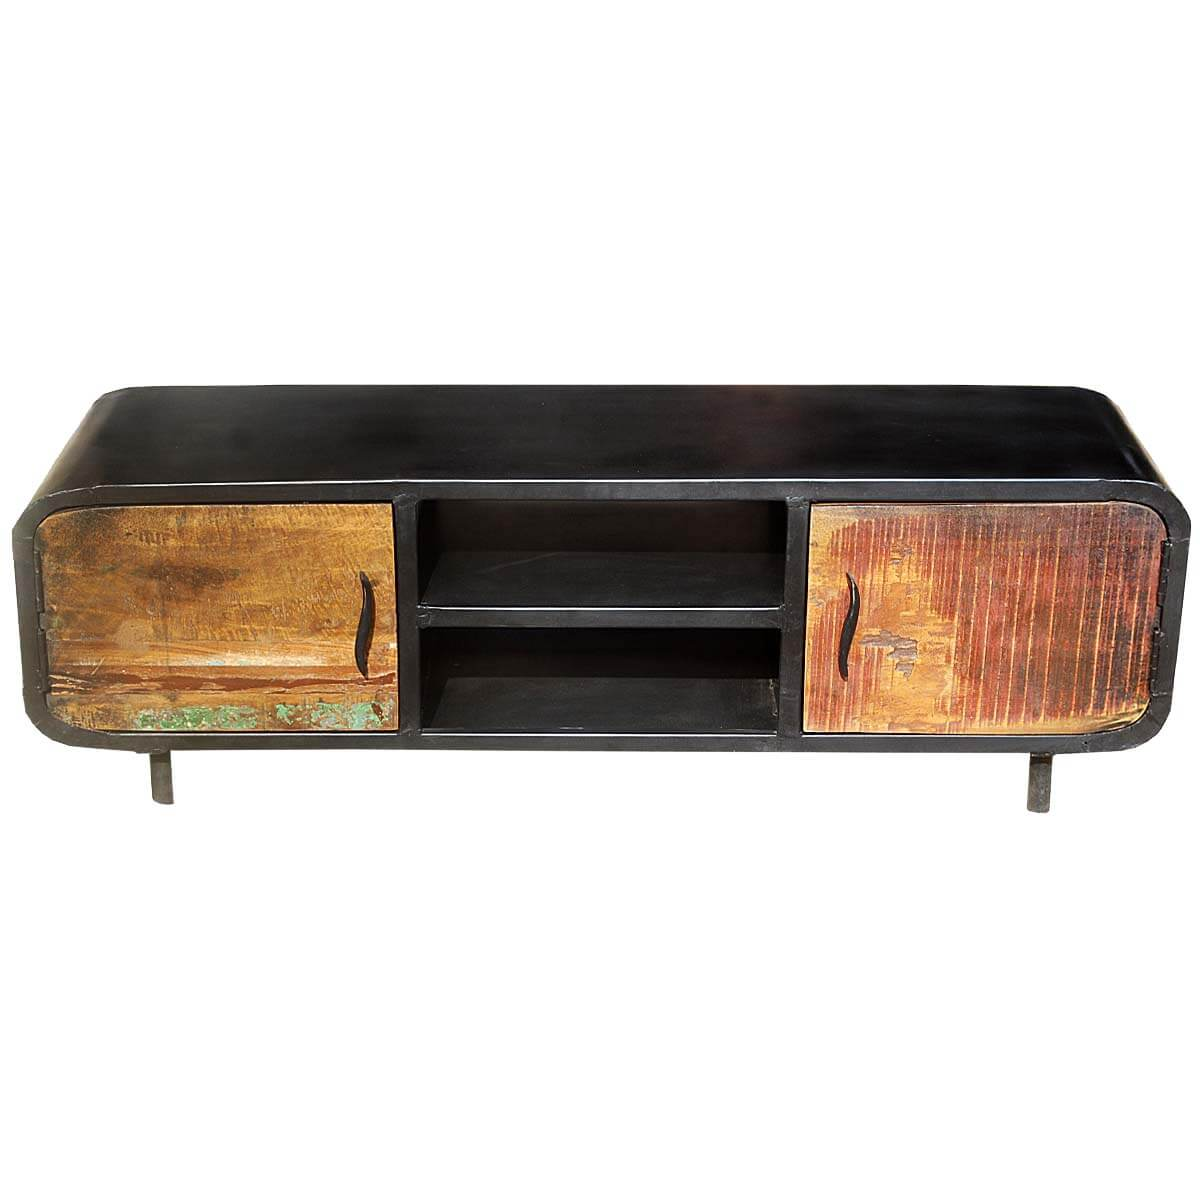 1950s Retro Reclaimed Wood amp Iron Media Cabinet TV Stand